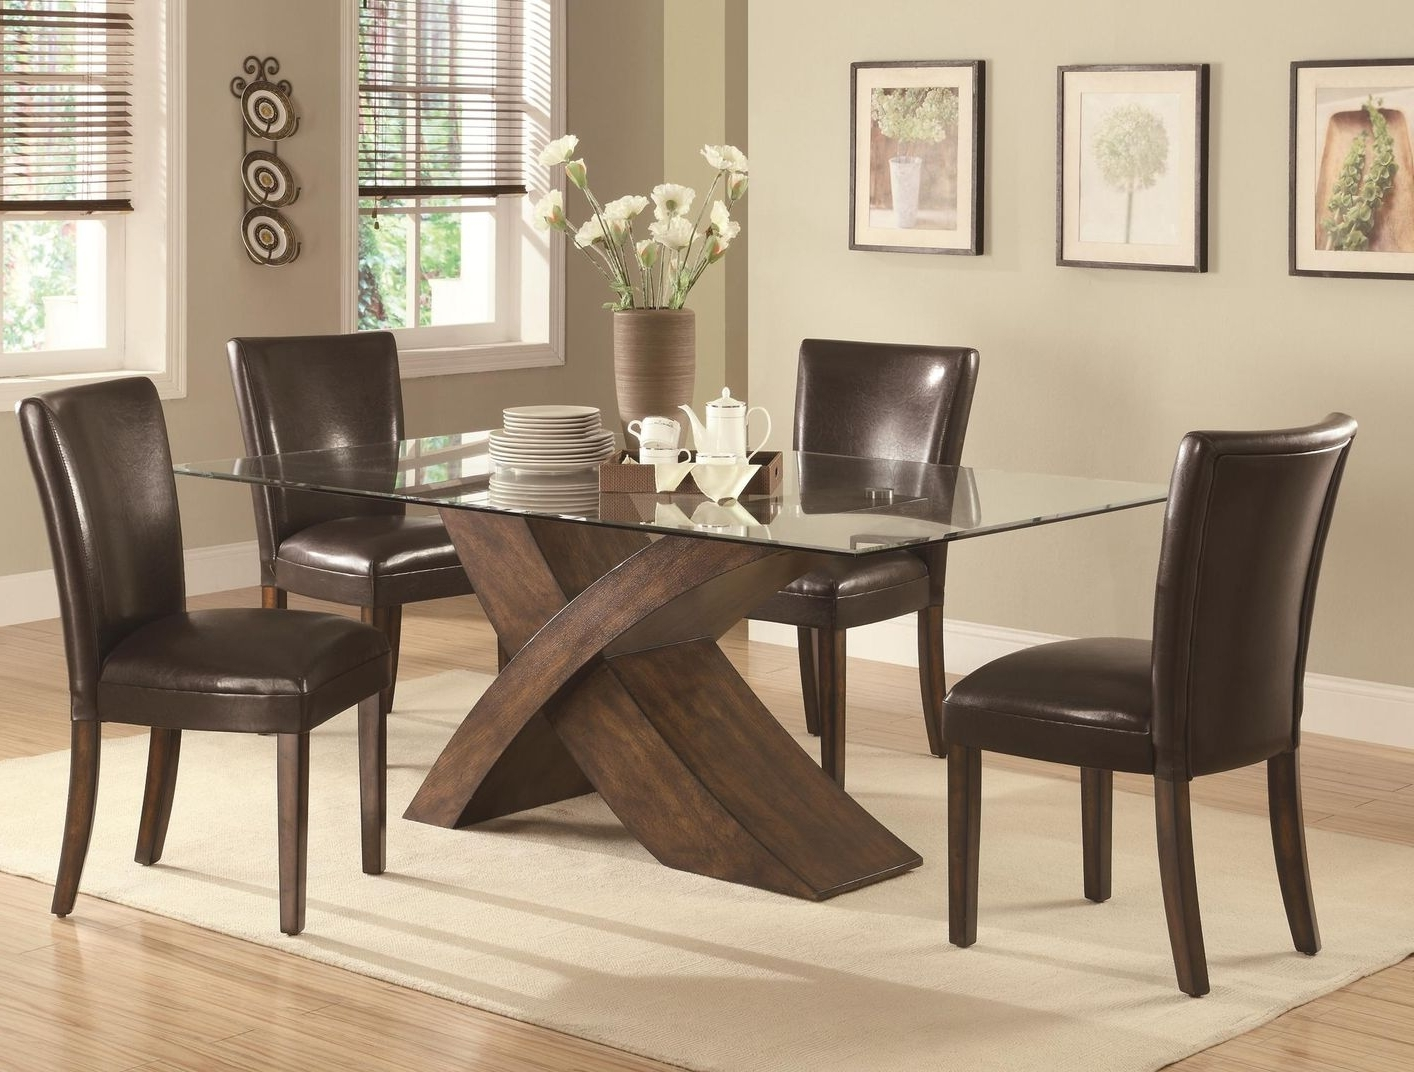 Widely Used Nessa Deep Brown Wood And Glass Dining Table Set – Steal A Sofa Throughout Wood Glass Dining Tables (View 19 of 25)